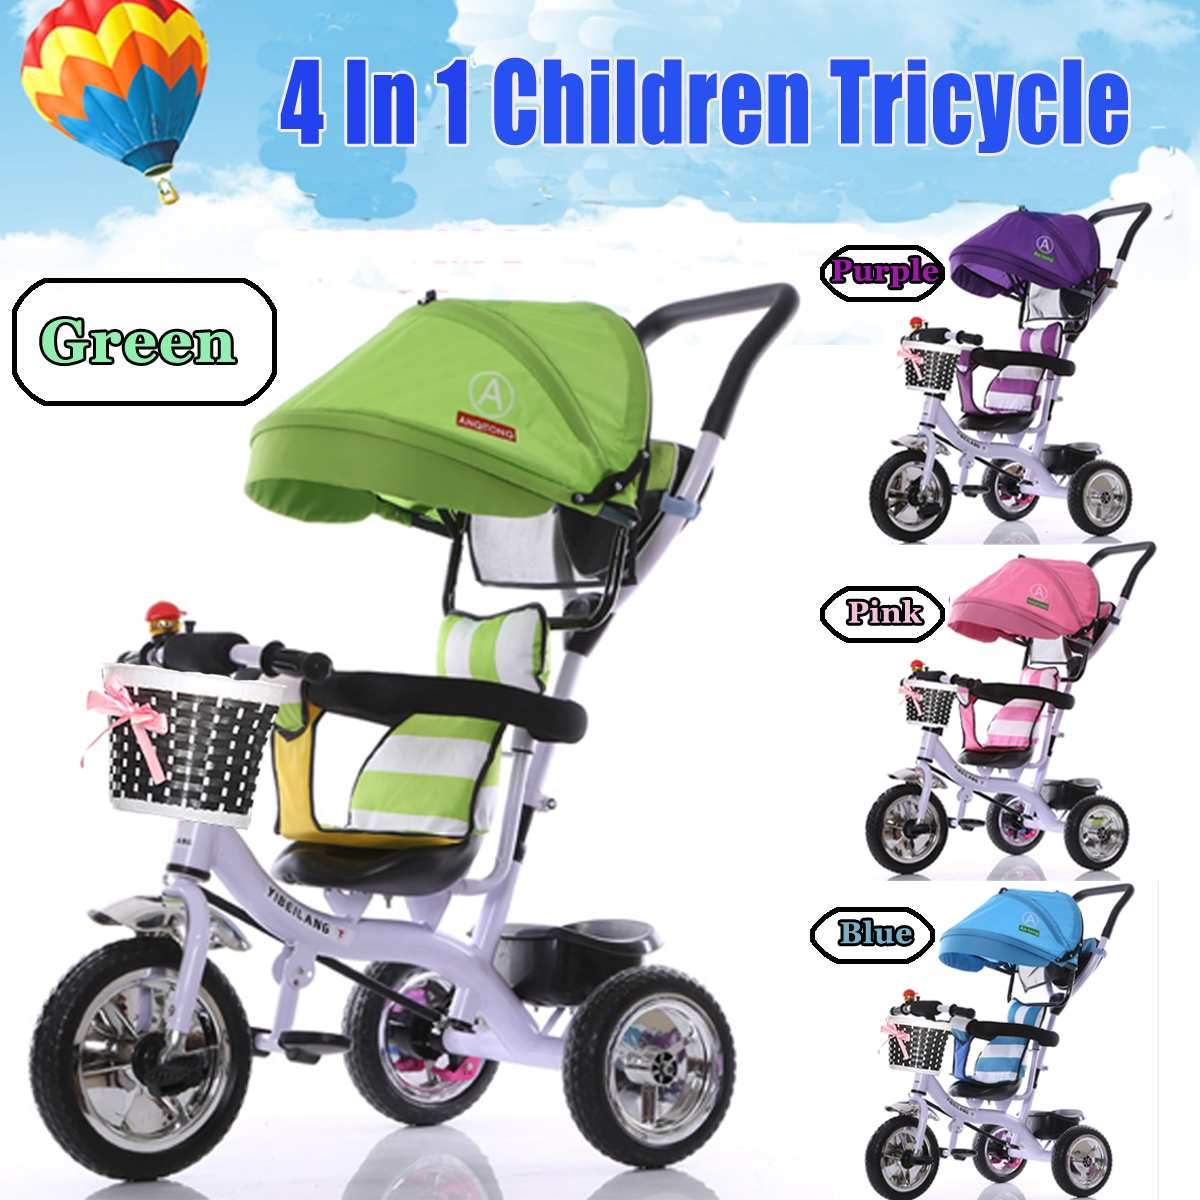 4 in 1 Baby Trolley Bicycle Baby Bike Children Tricycle Kids Trikes Hand Push Folding Bikes